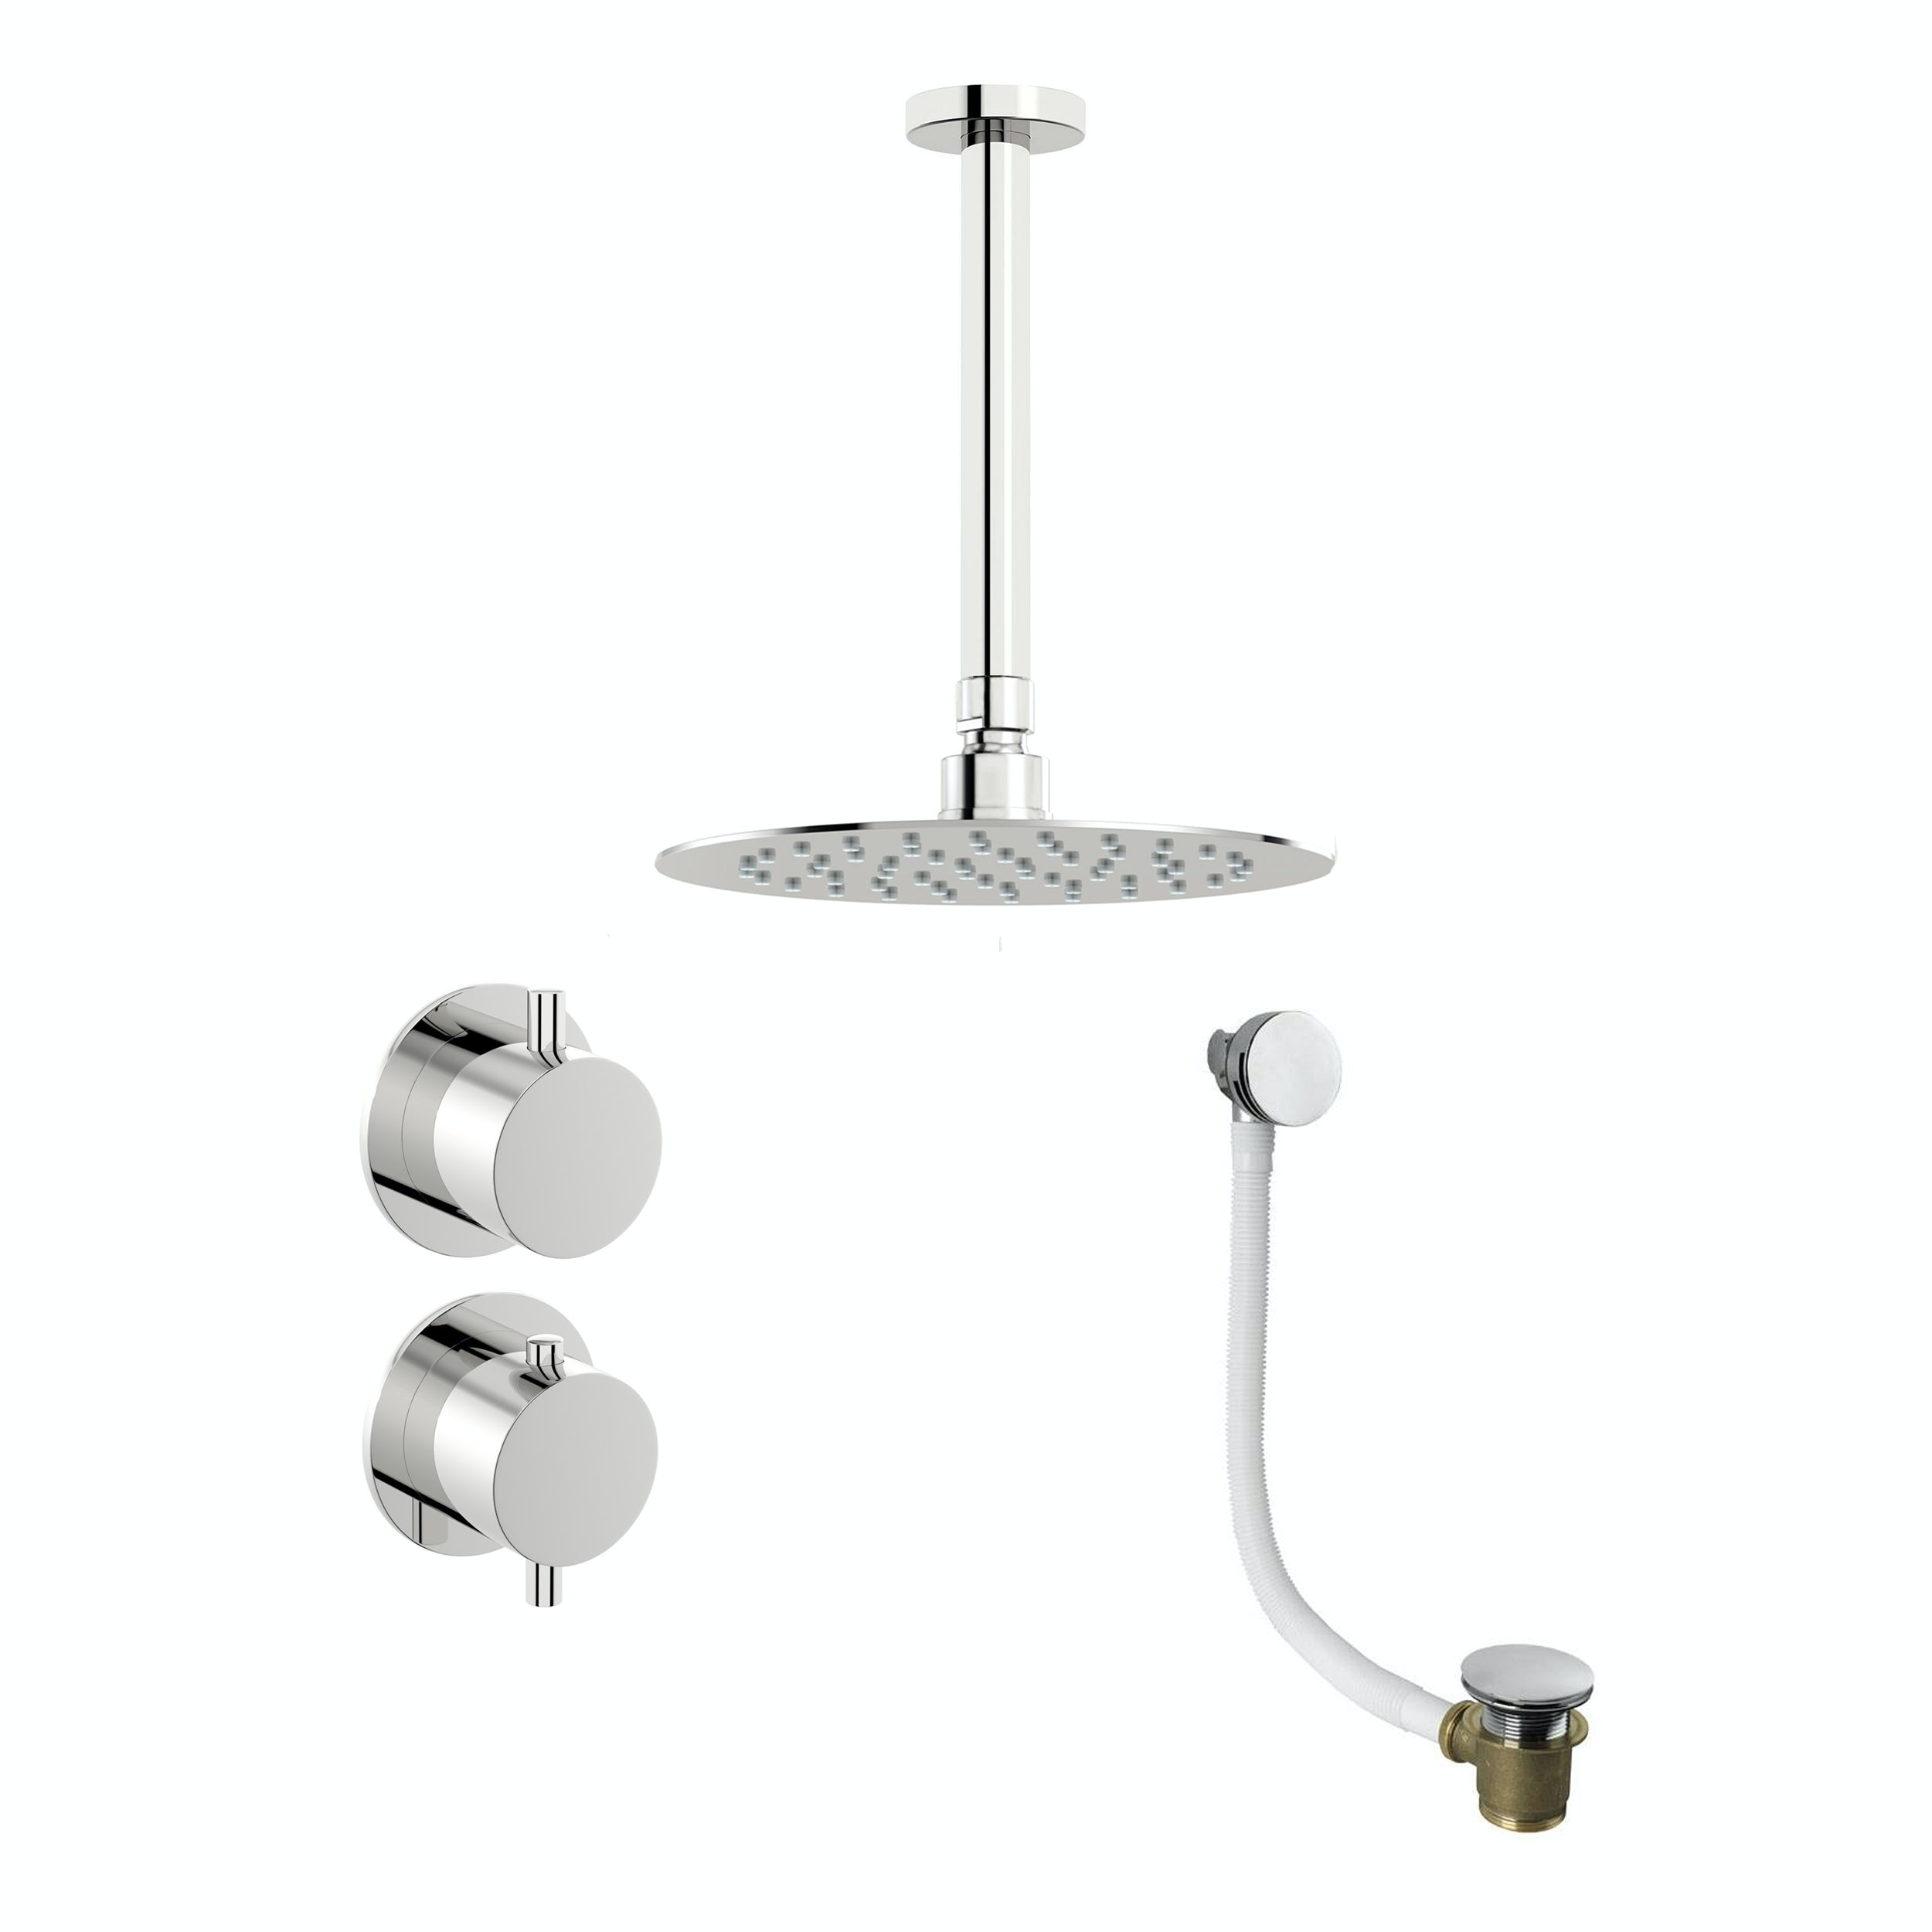 Mode Hardy thermostatic shower valve with ceiling shower bath set